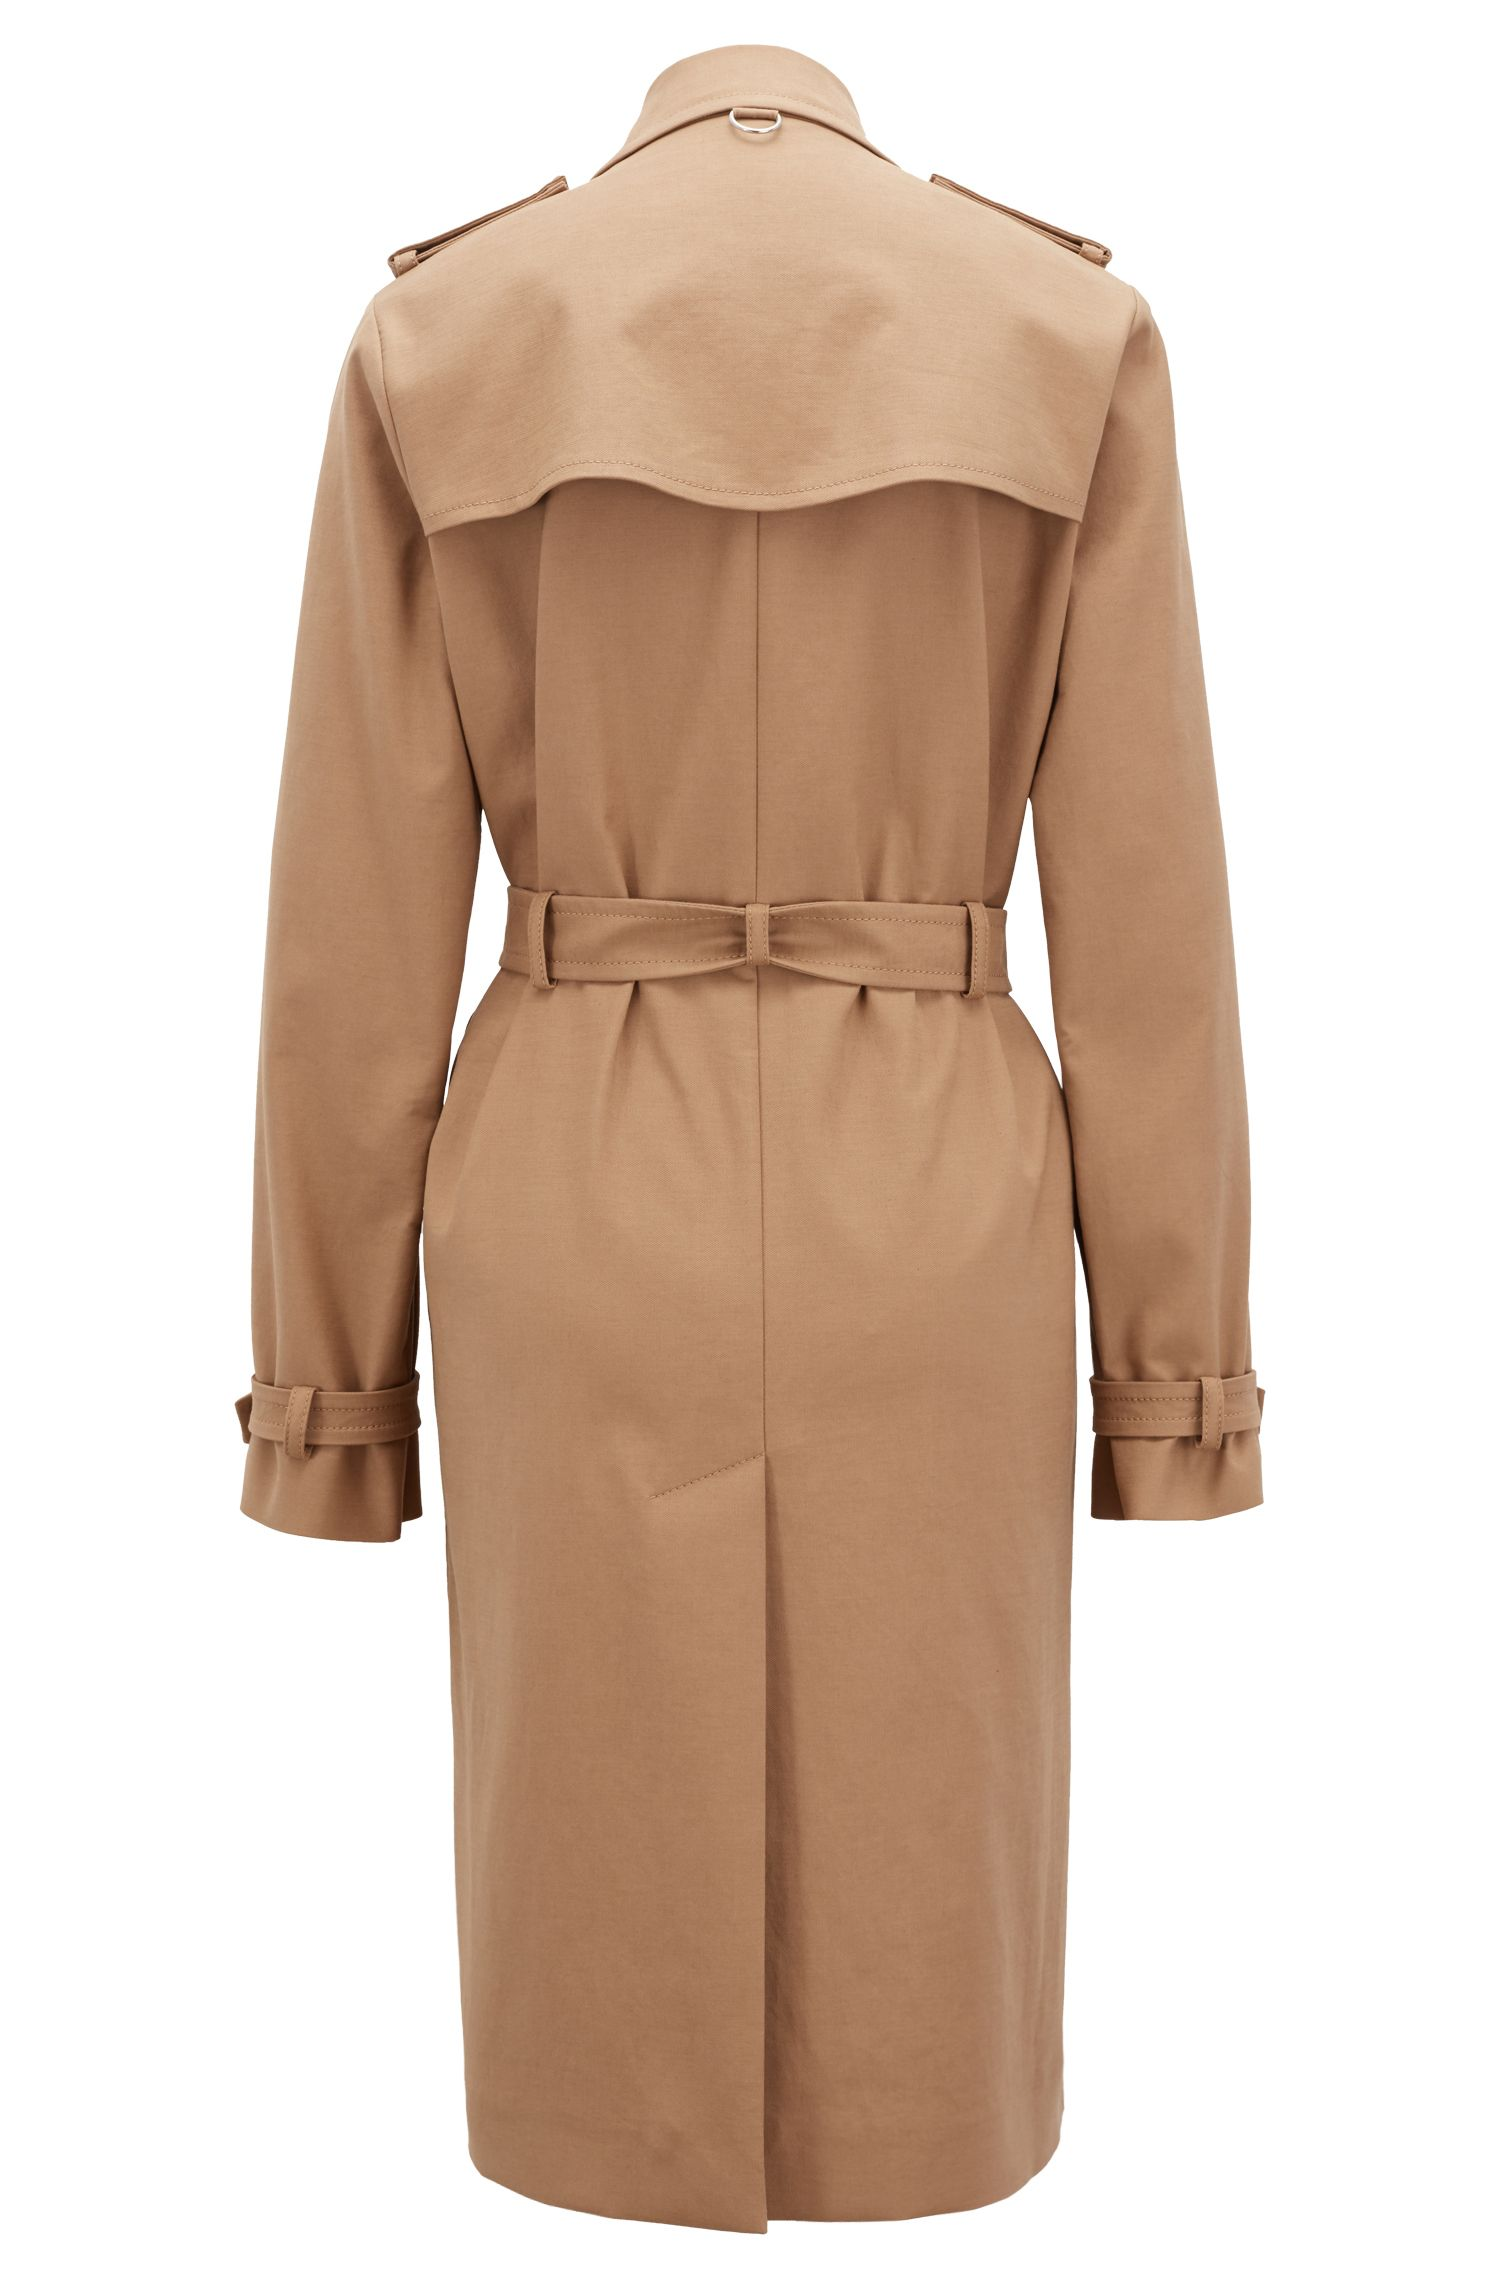 Trench coat in stretch cotton with hardware details, Beige